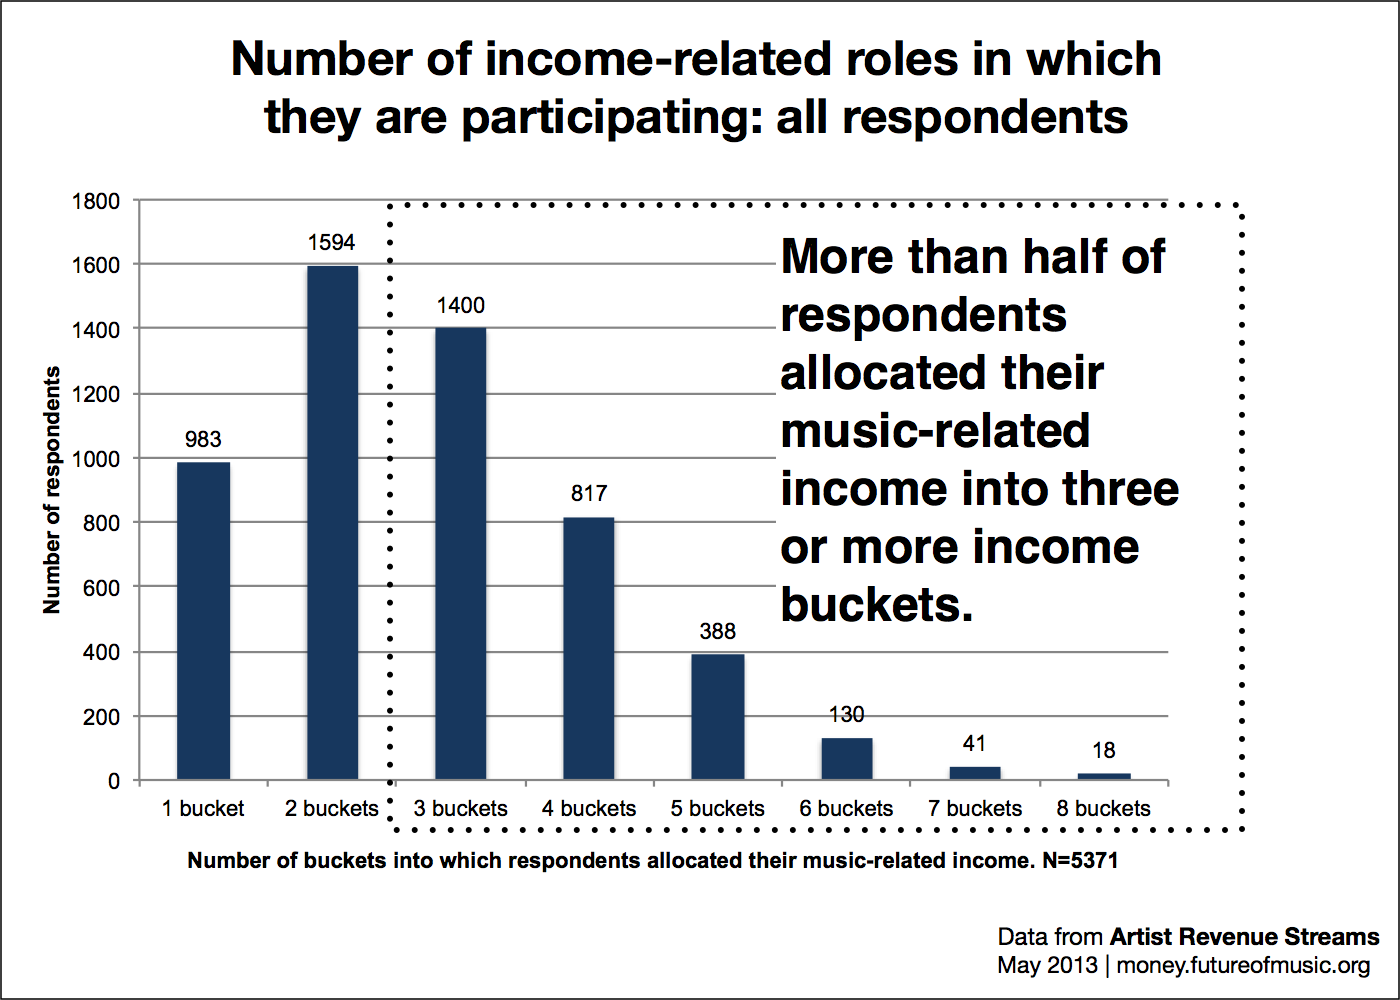 Number of roles by allocation of income